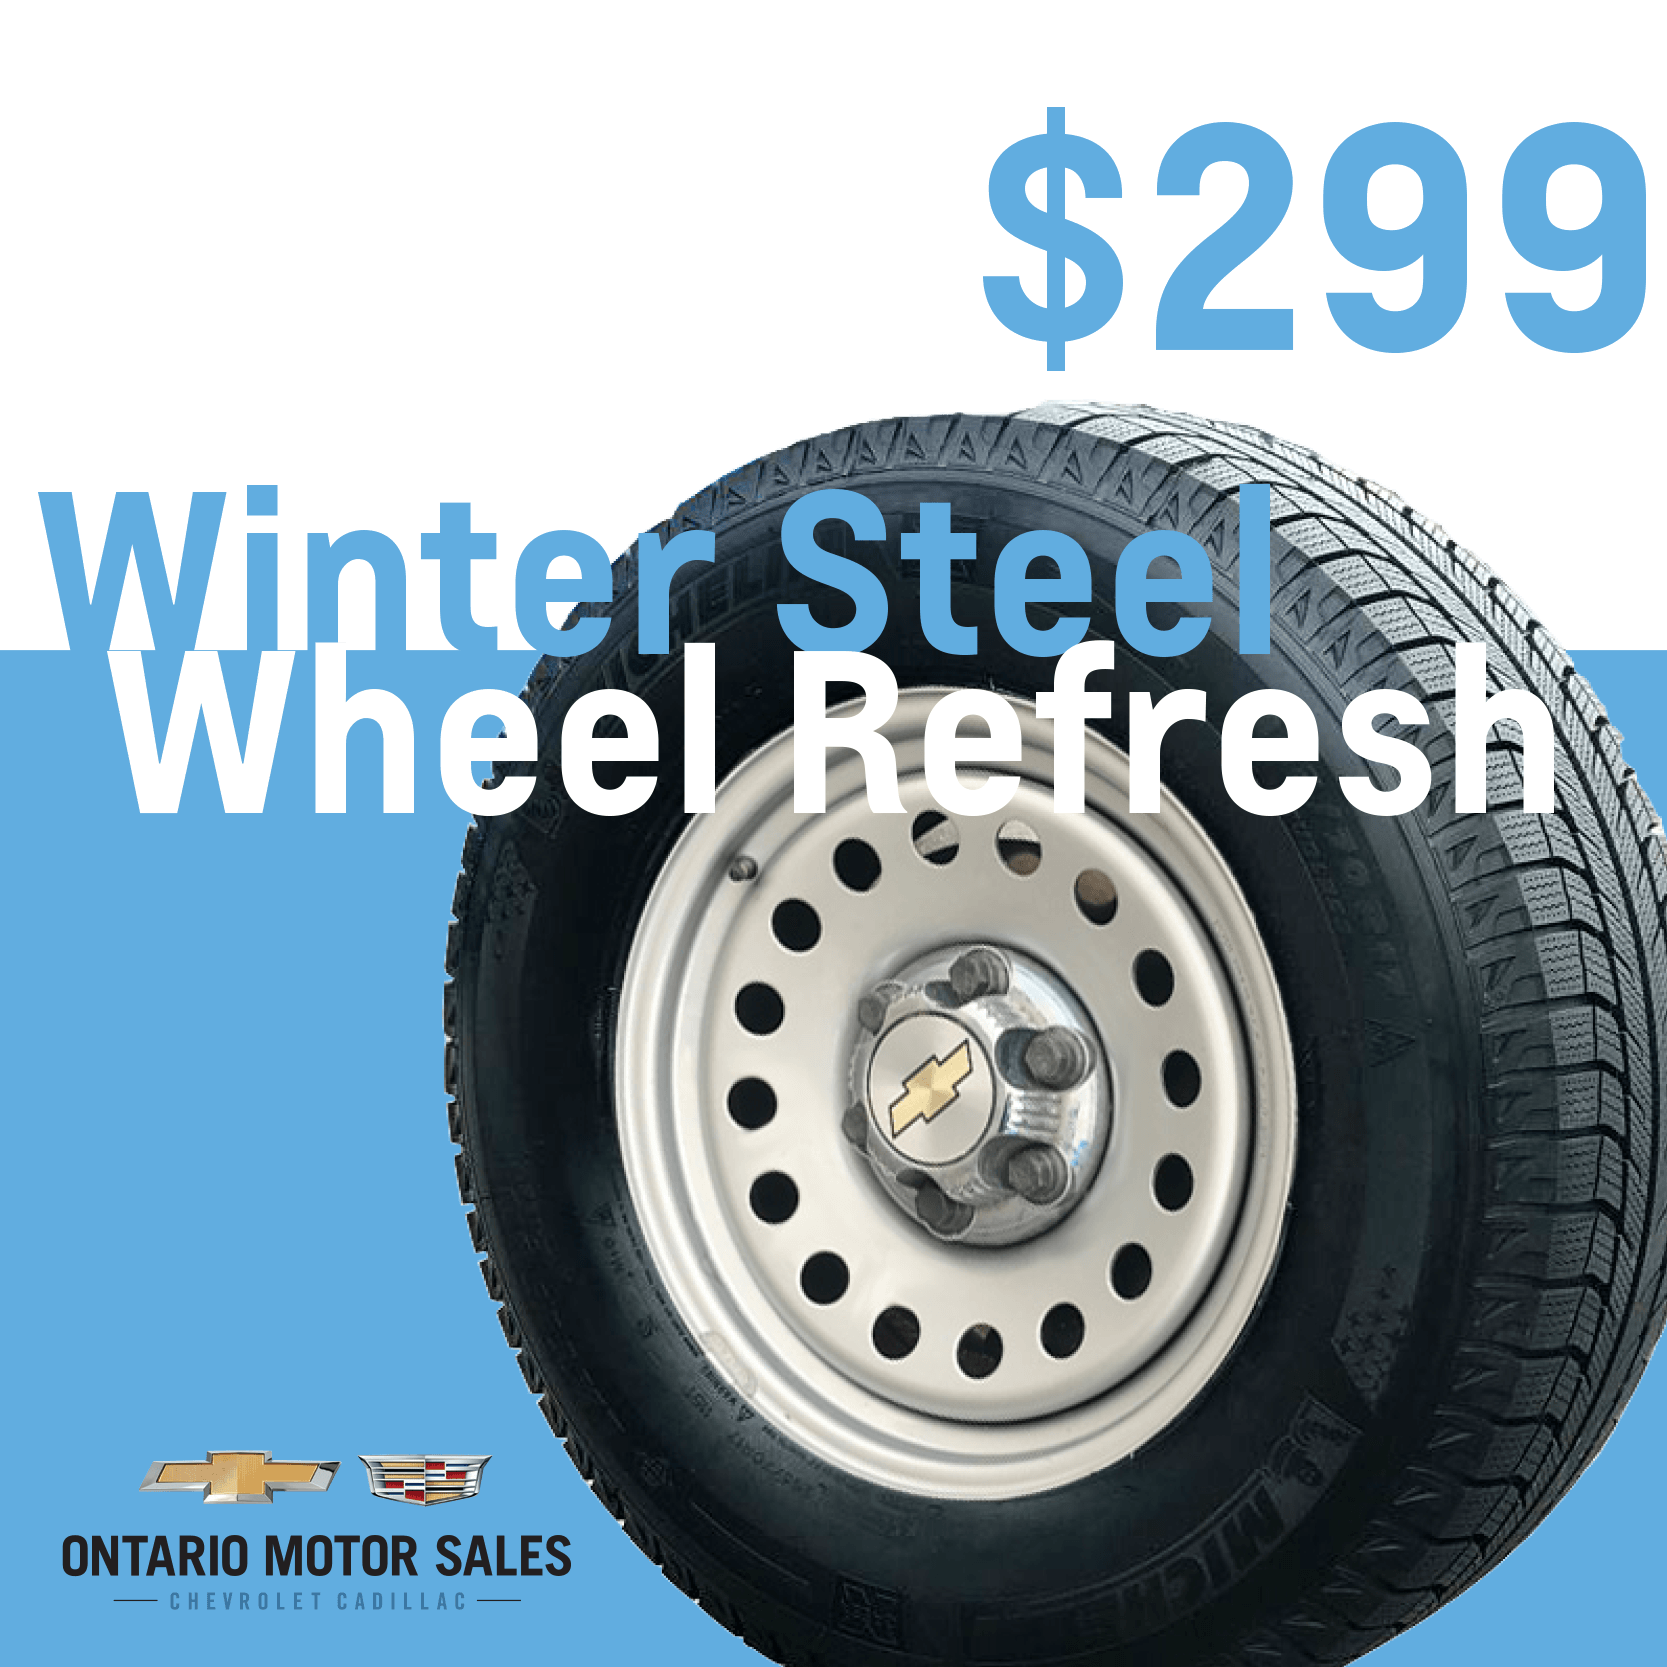 Winter Steel Wheel Refresh